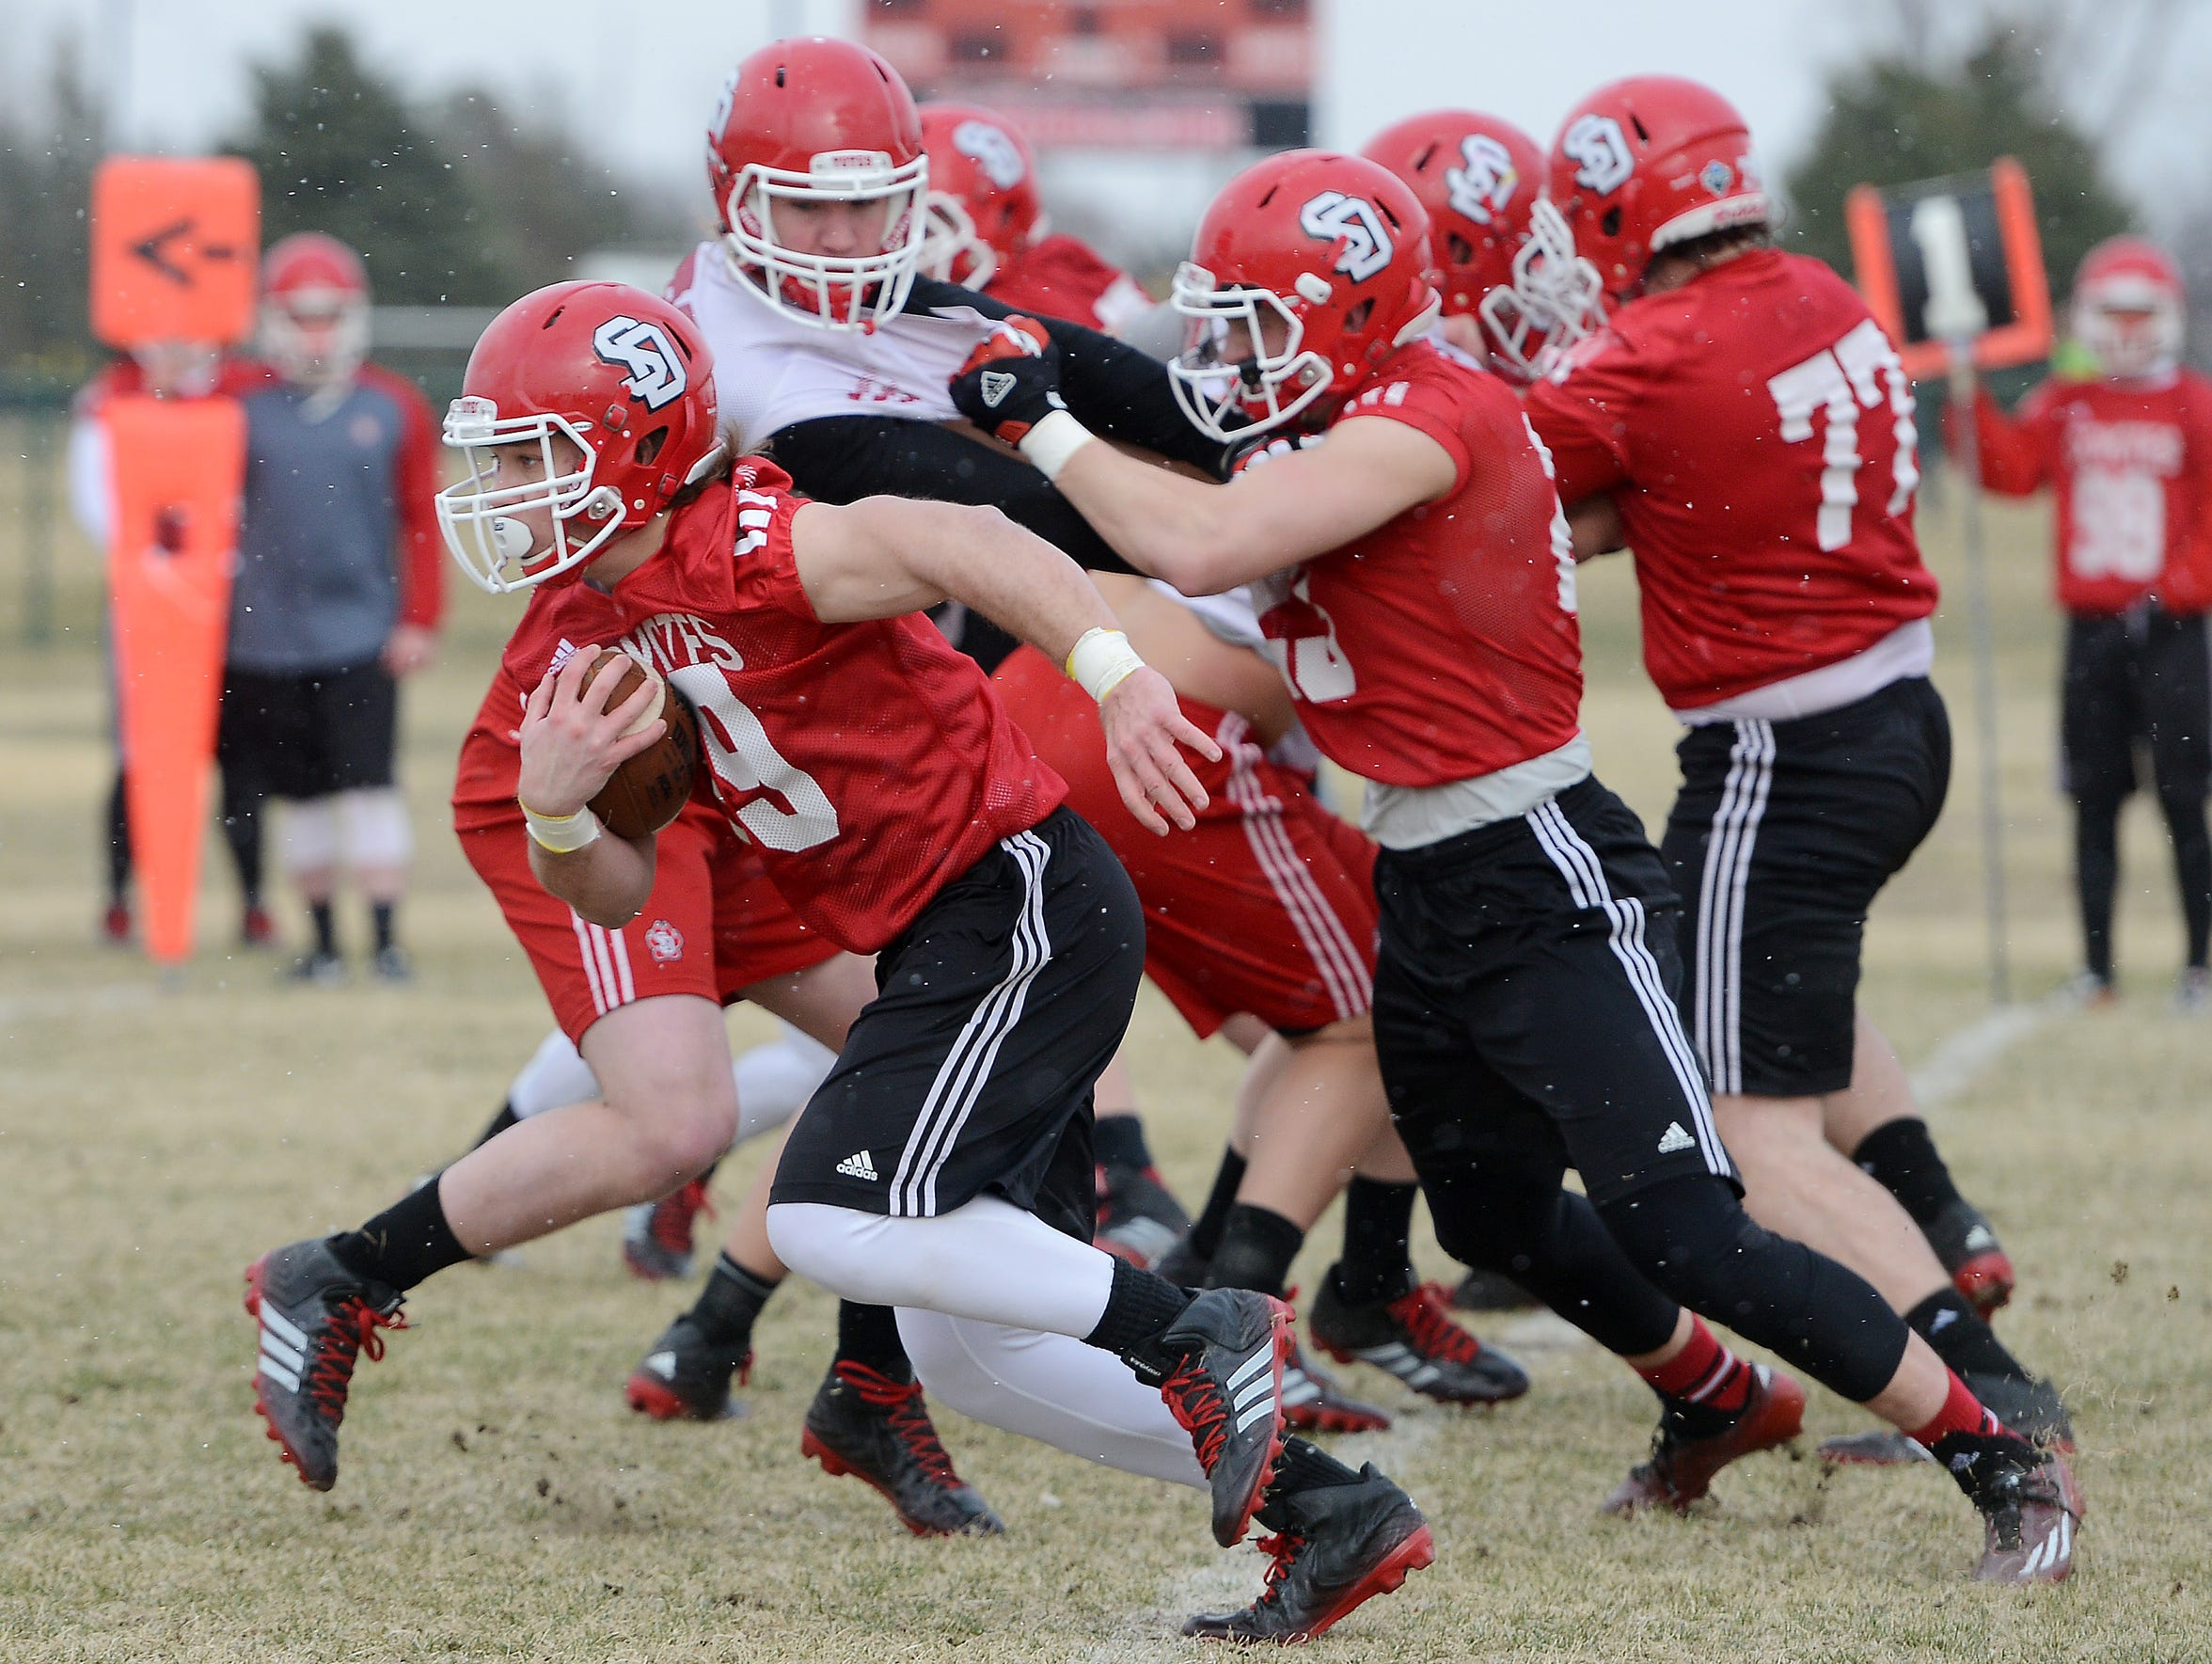 Runningback, Shay Bratland carries the ball during